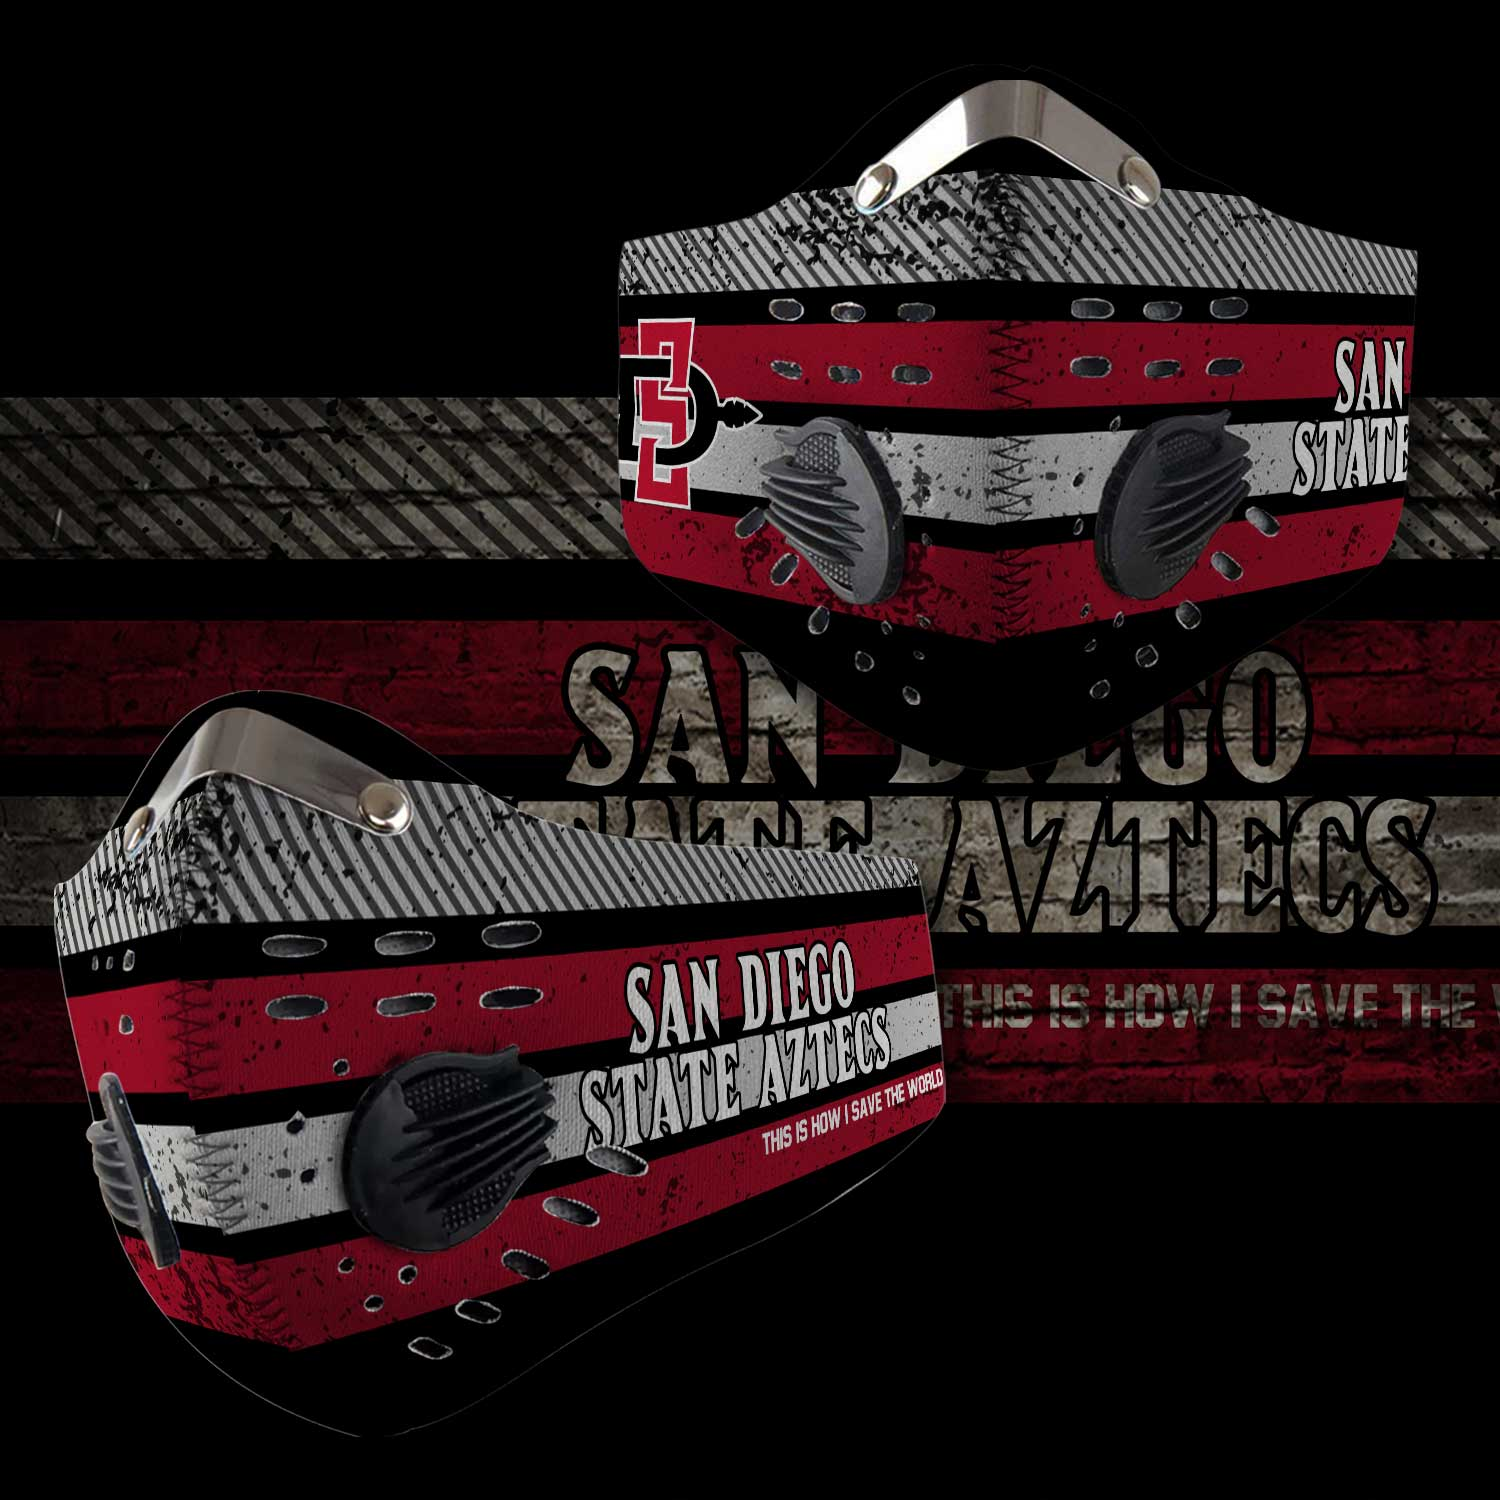 San diego state aztecs this is how i save the world face mask 1